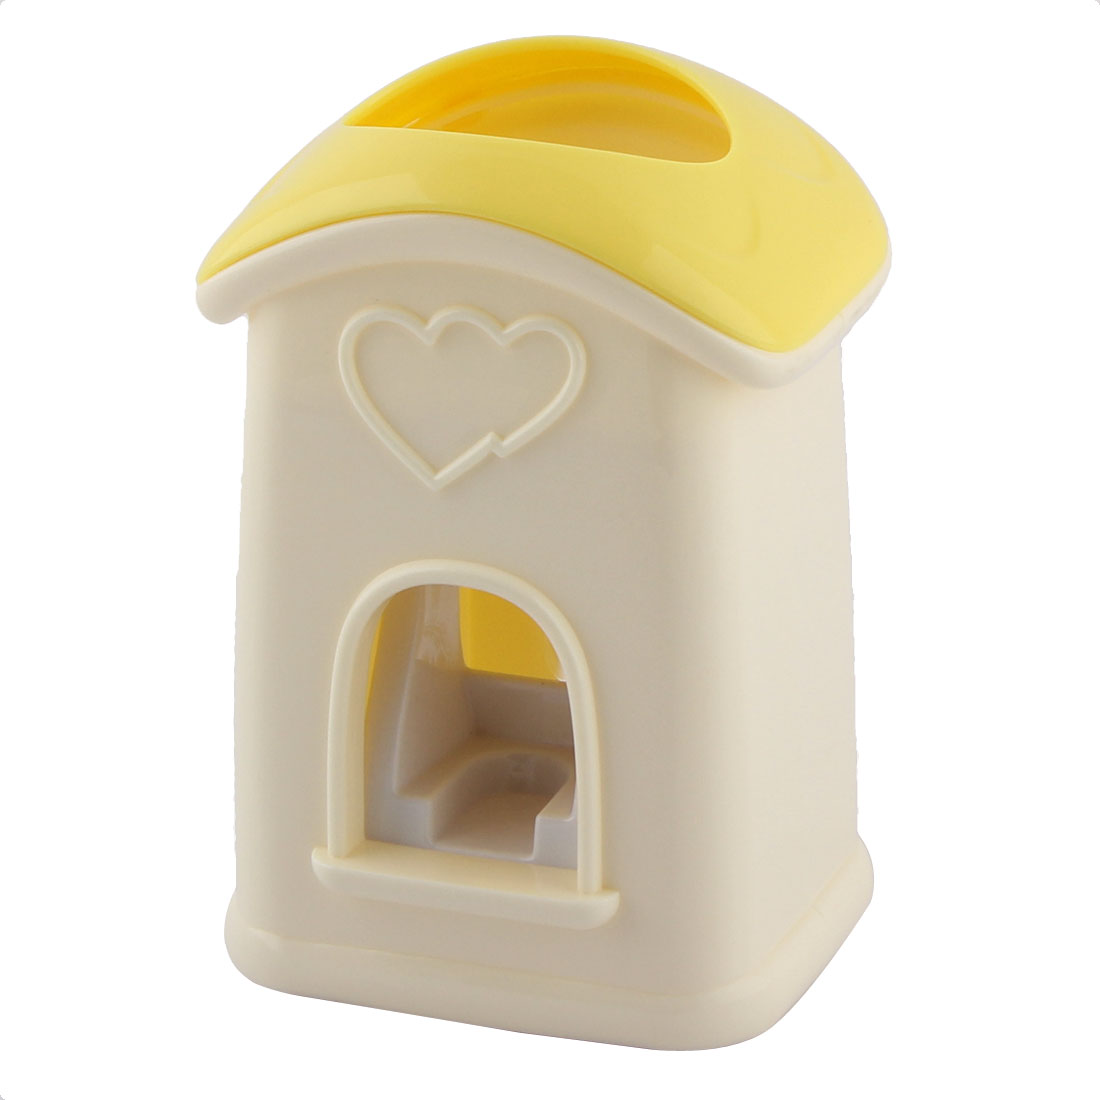 Household Cute House Shape Hands Free Automatic Toothpaste Dispenser Squeezer Holder Yellow